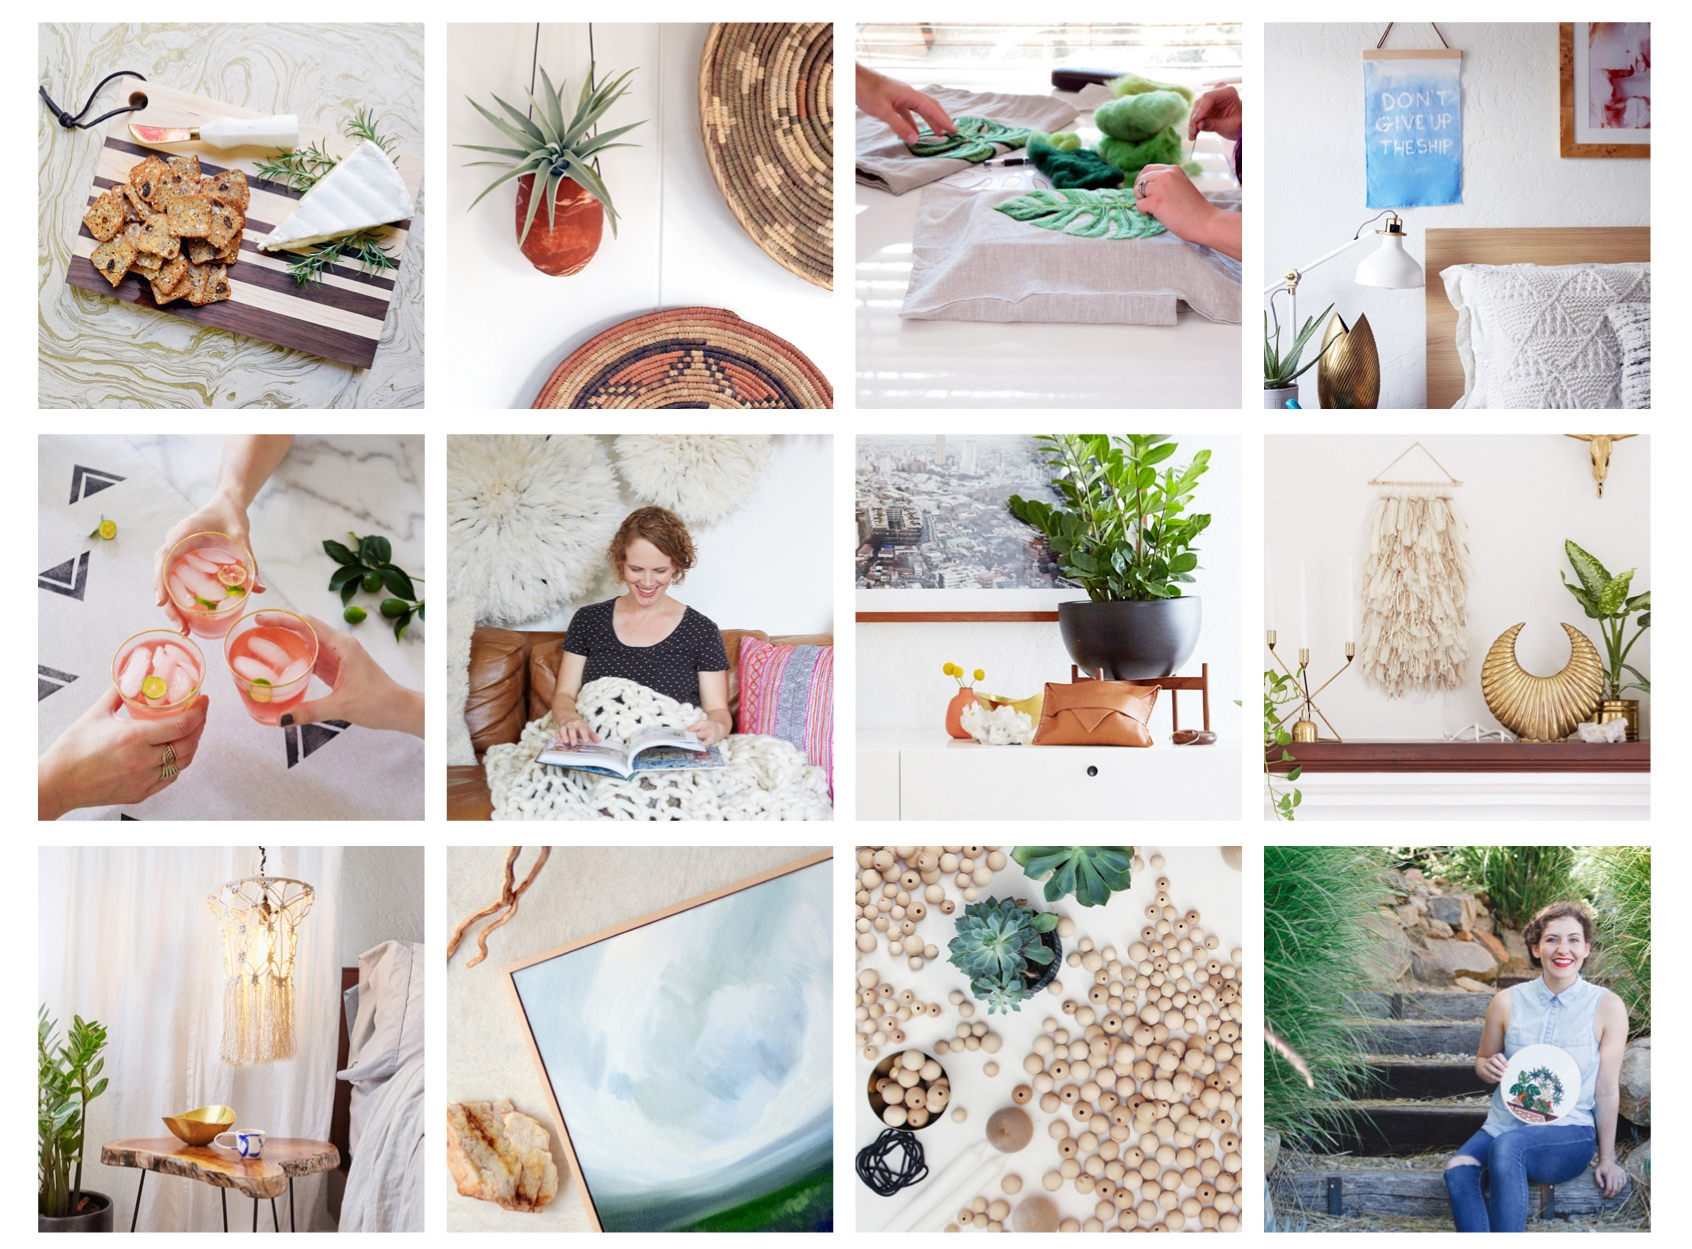 Selected Projects and Featured Makers from The Crafter's Box